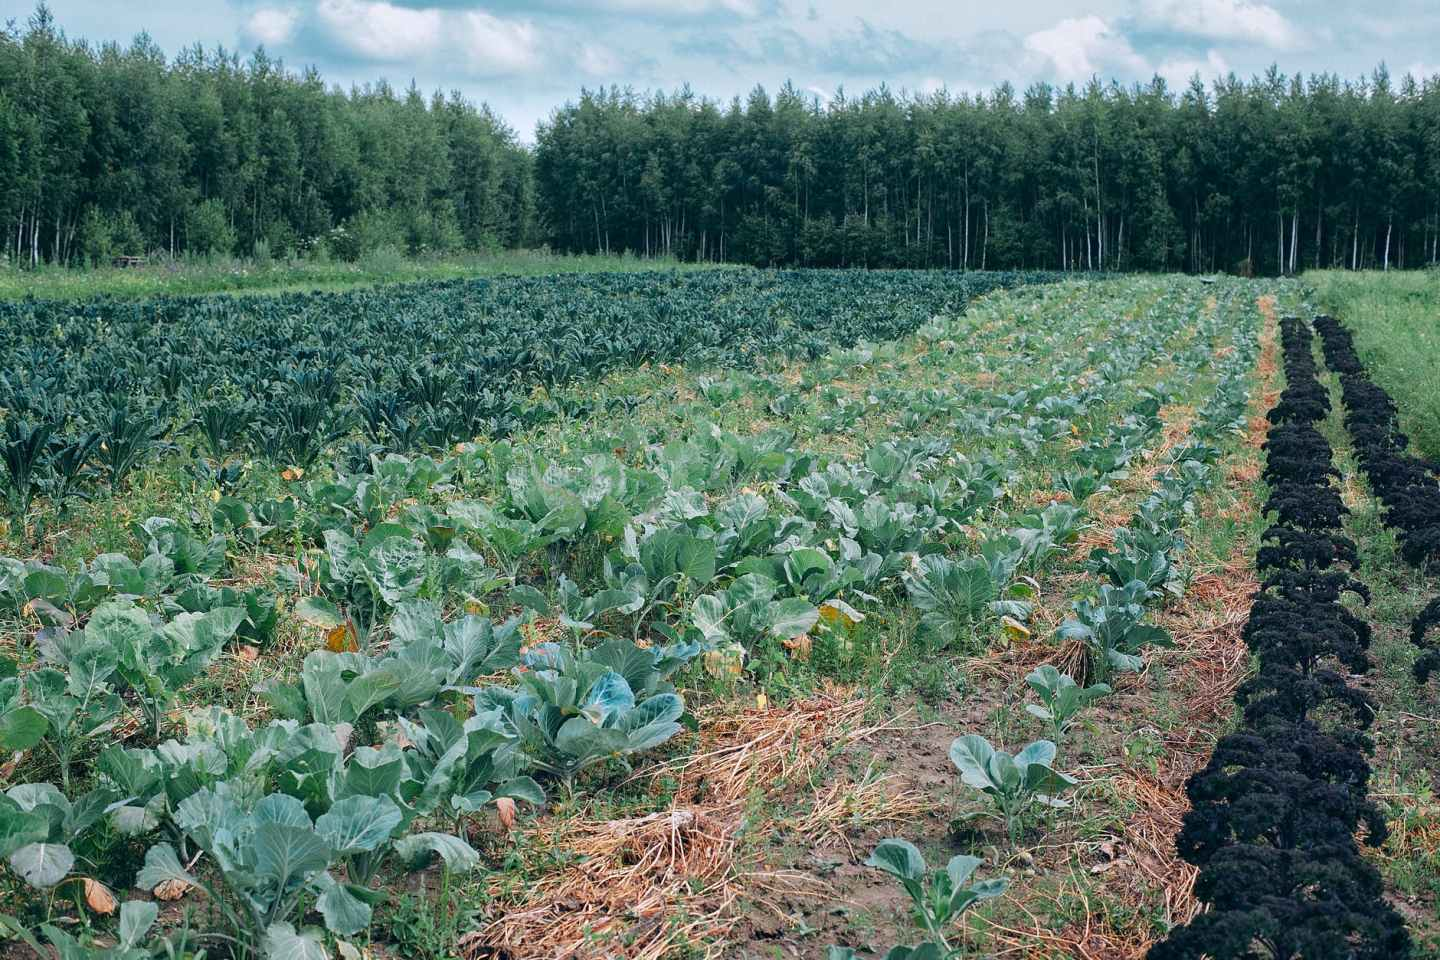 cabbage growing on agricultural field